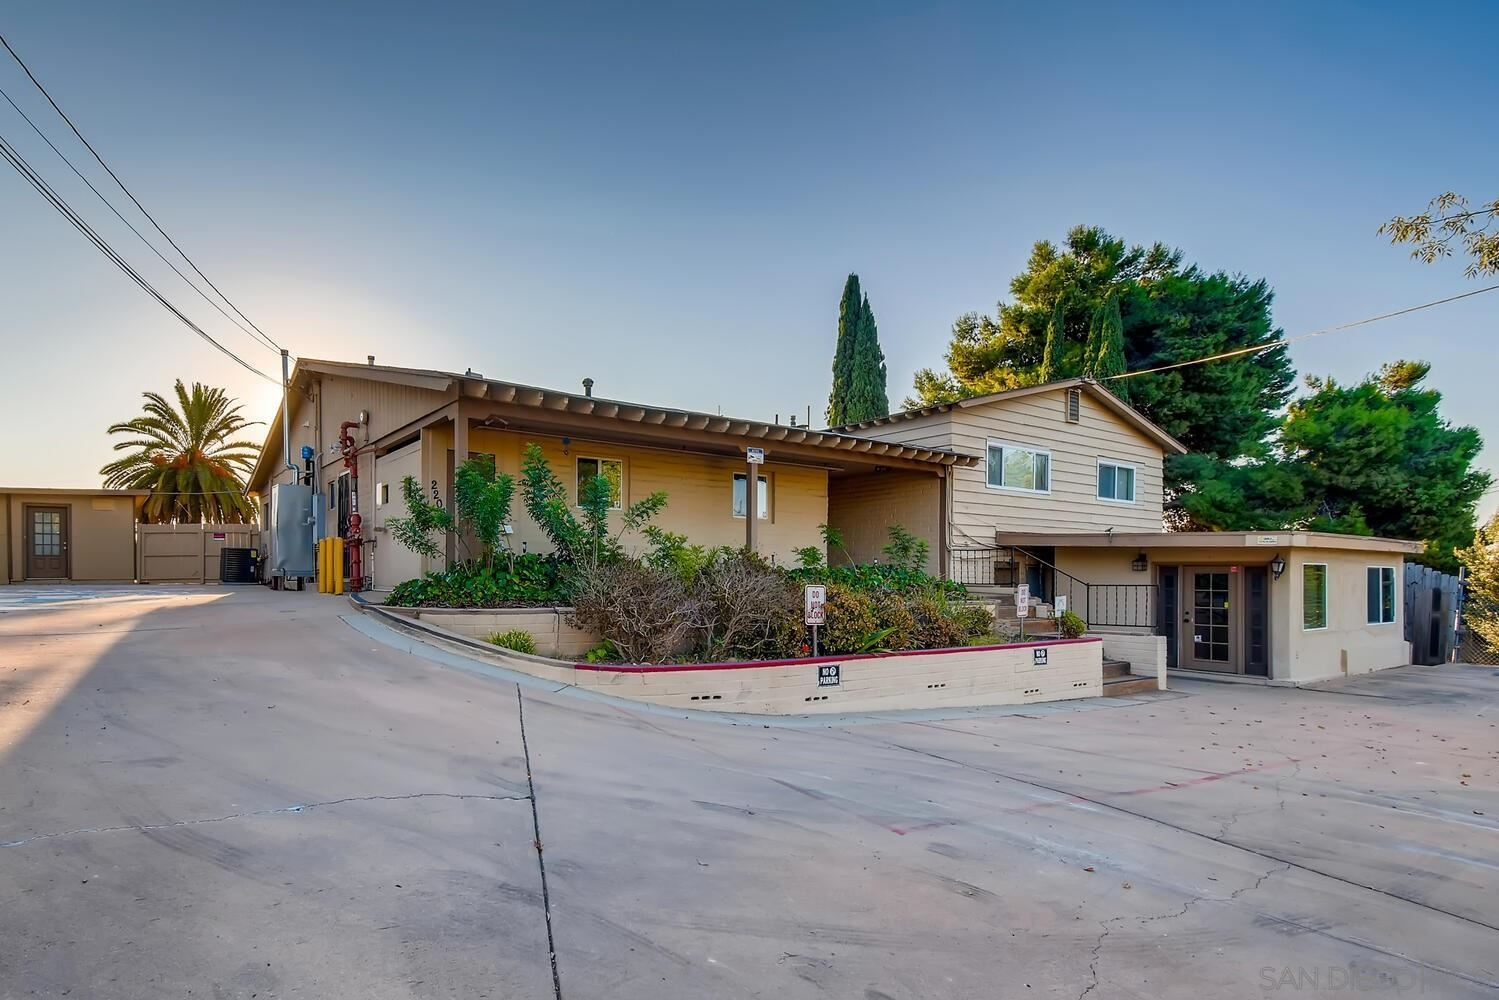 2205 El Prado, Lemon Grove, CA 91945 - MLS#: 200047297